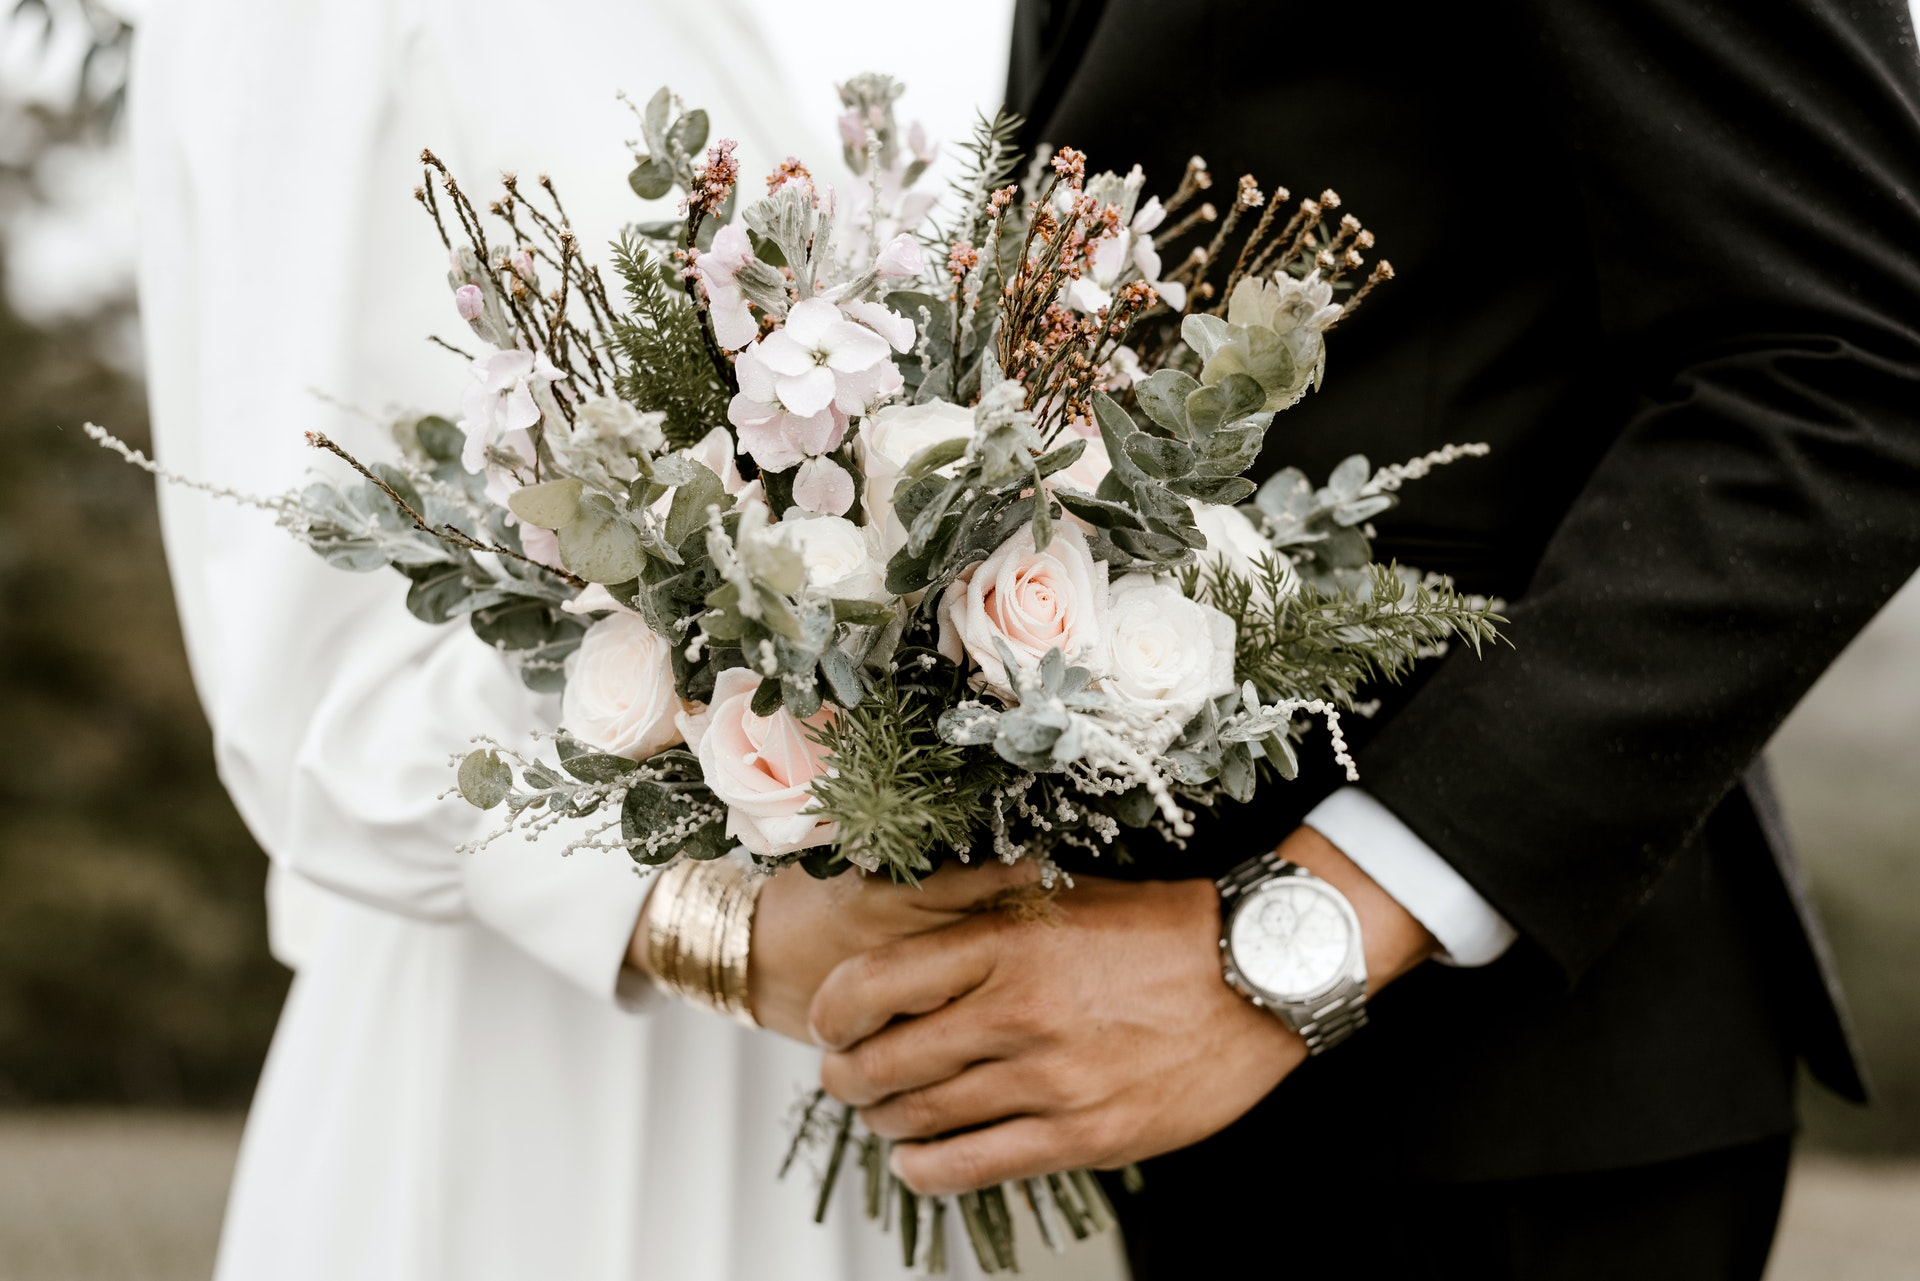 Couple holding flowers together at their wedding